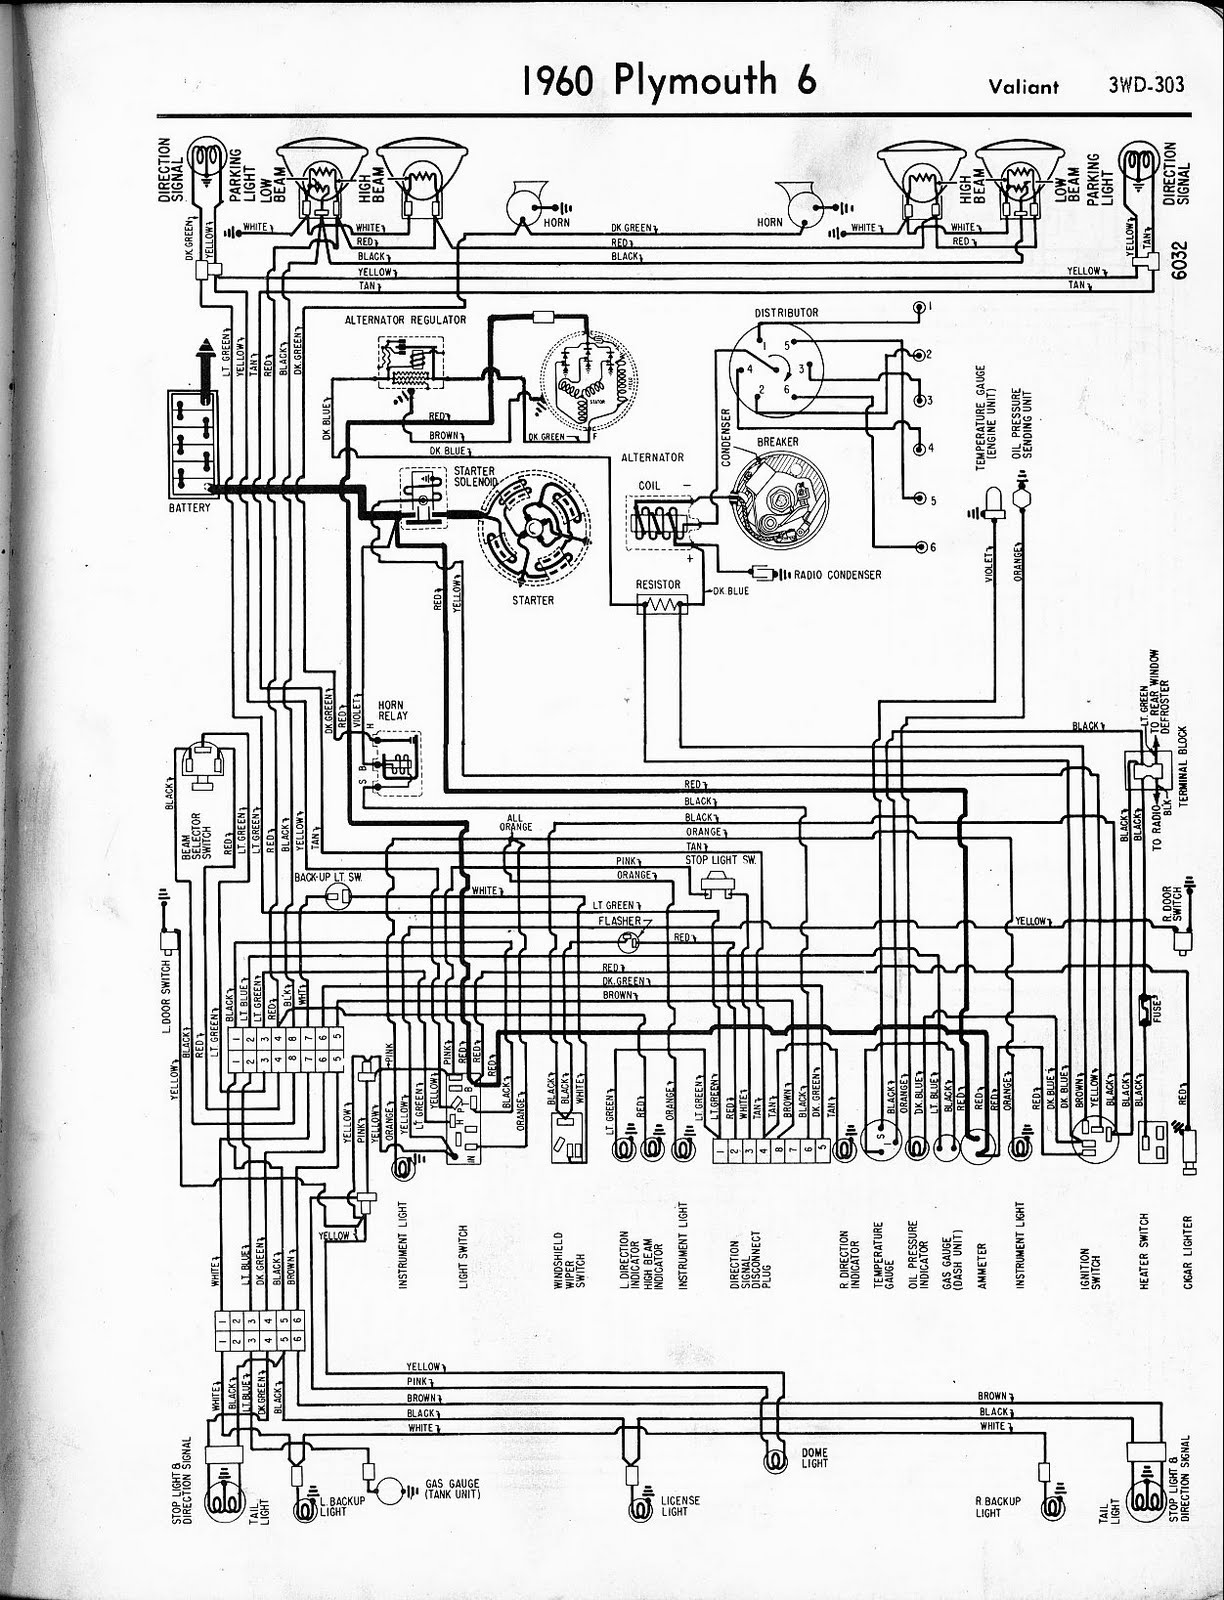 Free Auto Wiring Diagram Plymouth Valiant Wiring Diagram